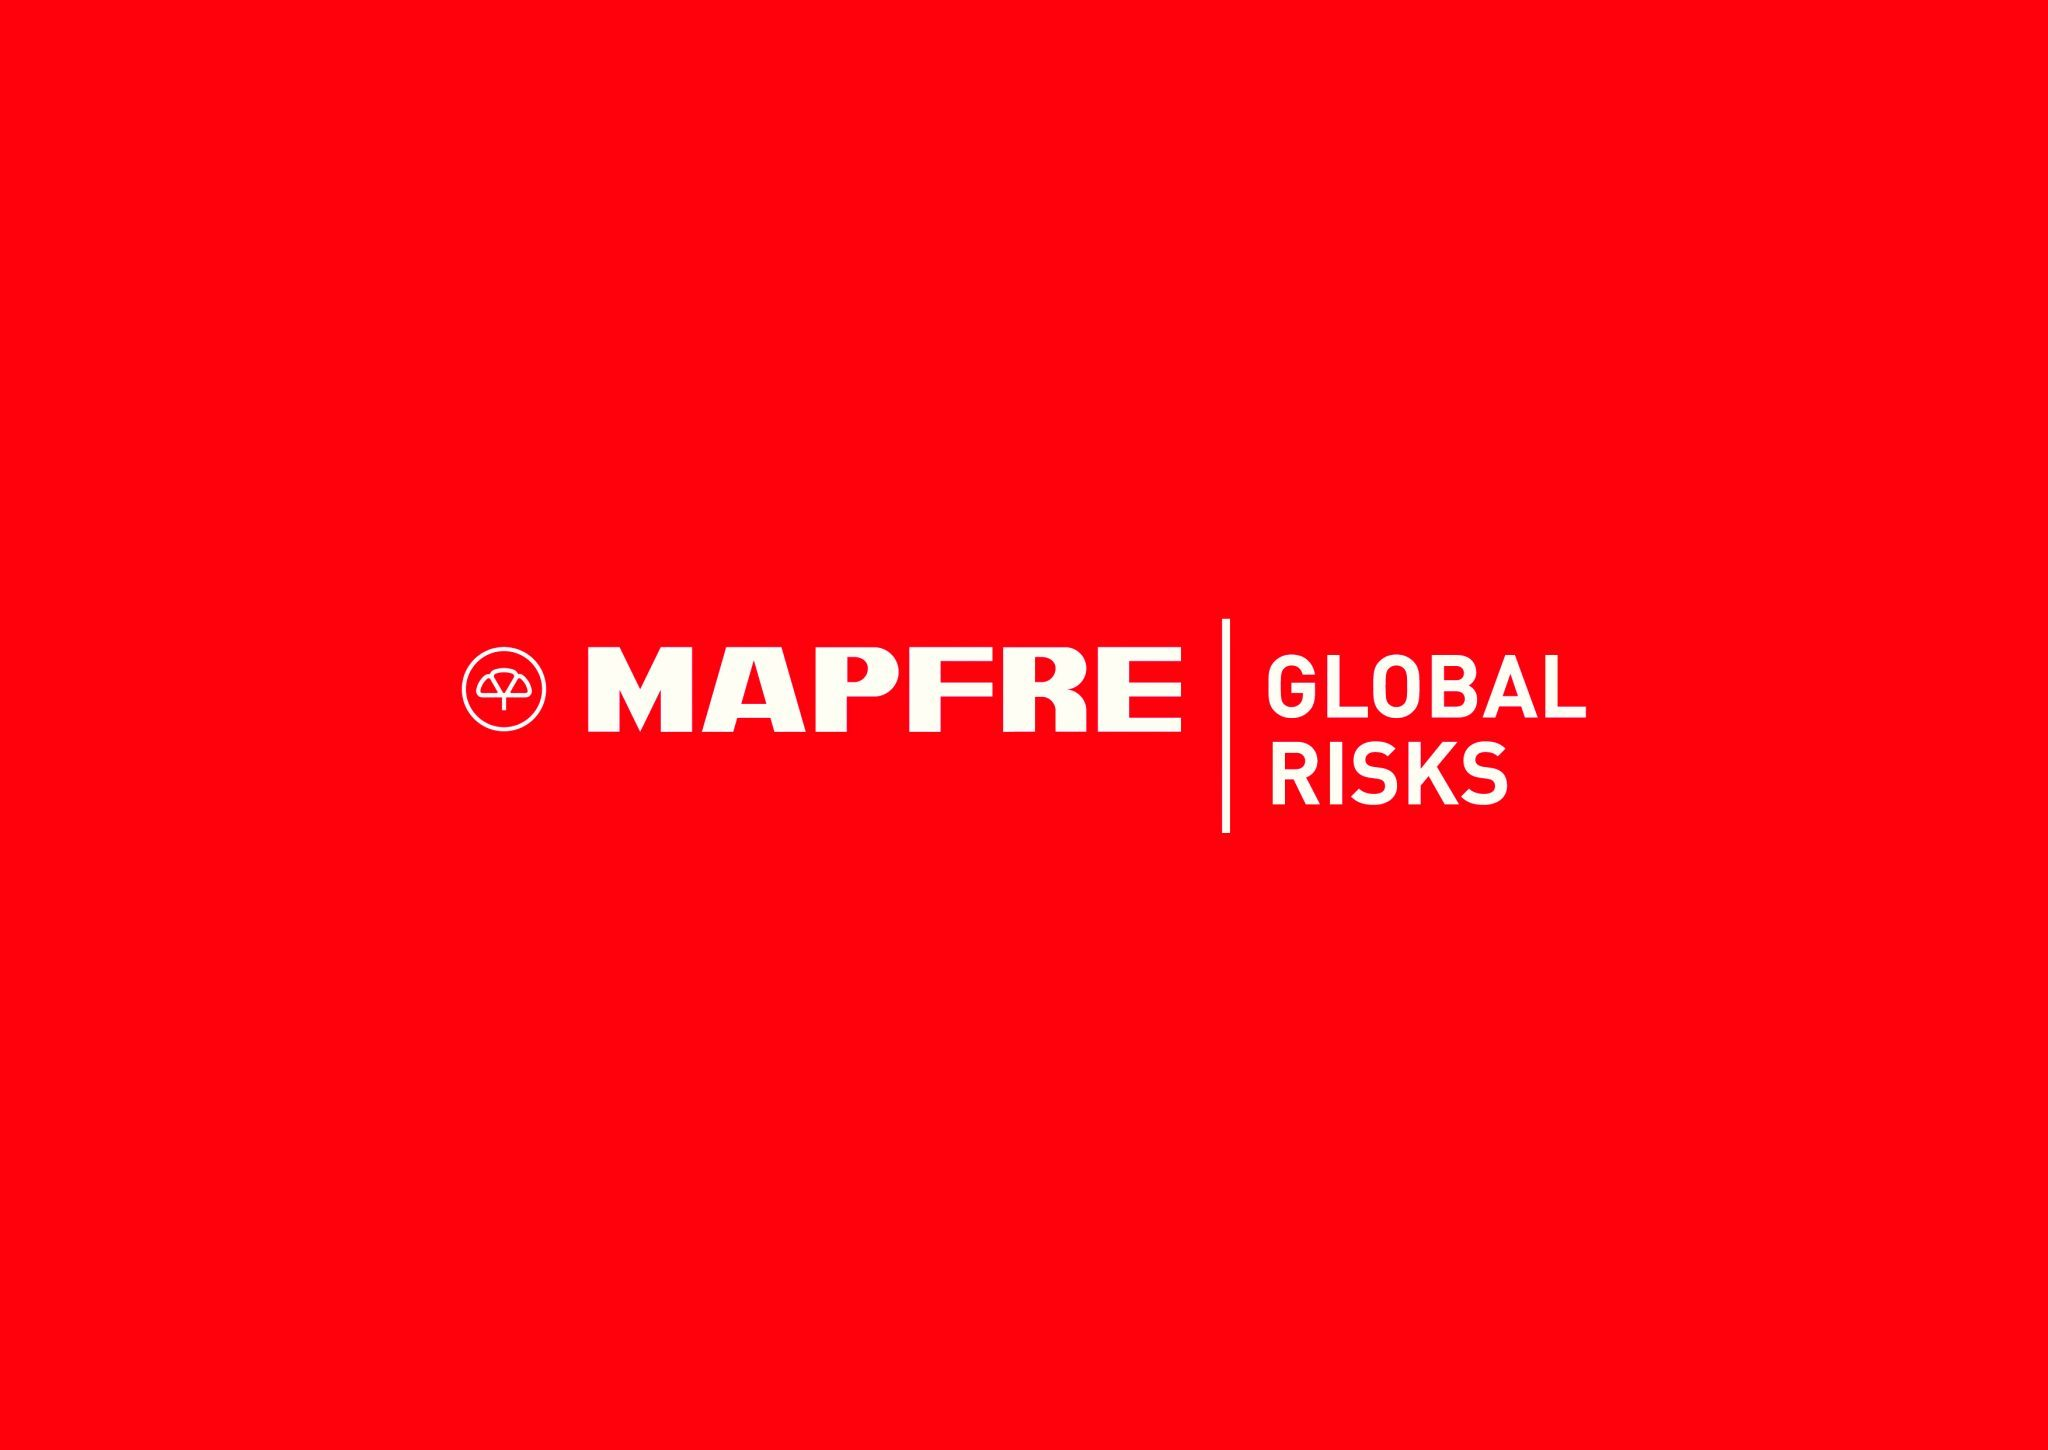 Mapfre Global Risks